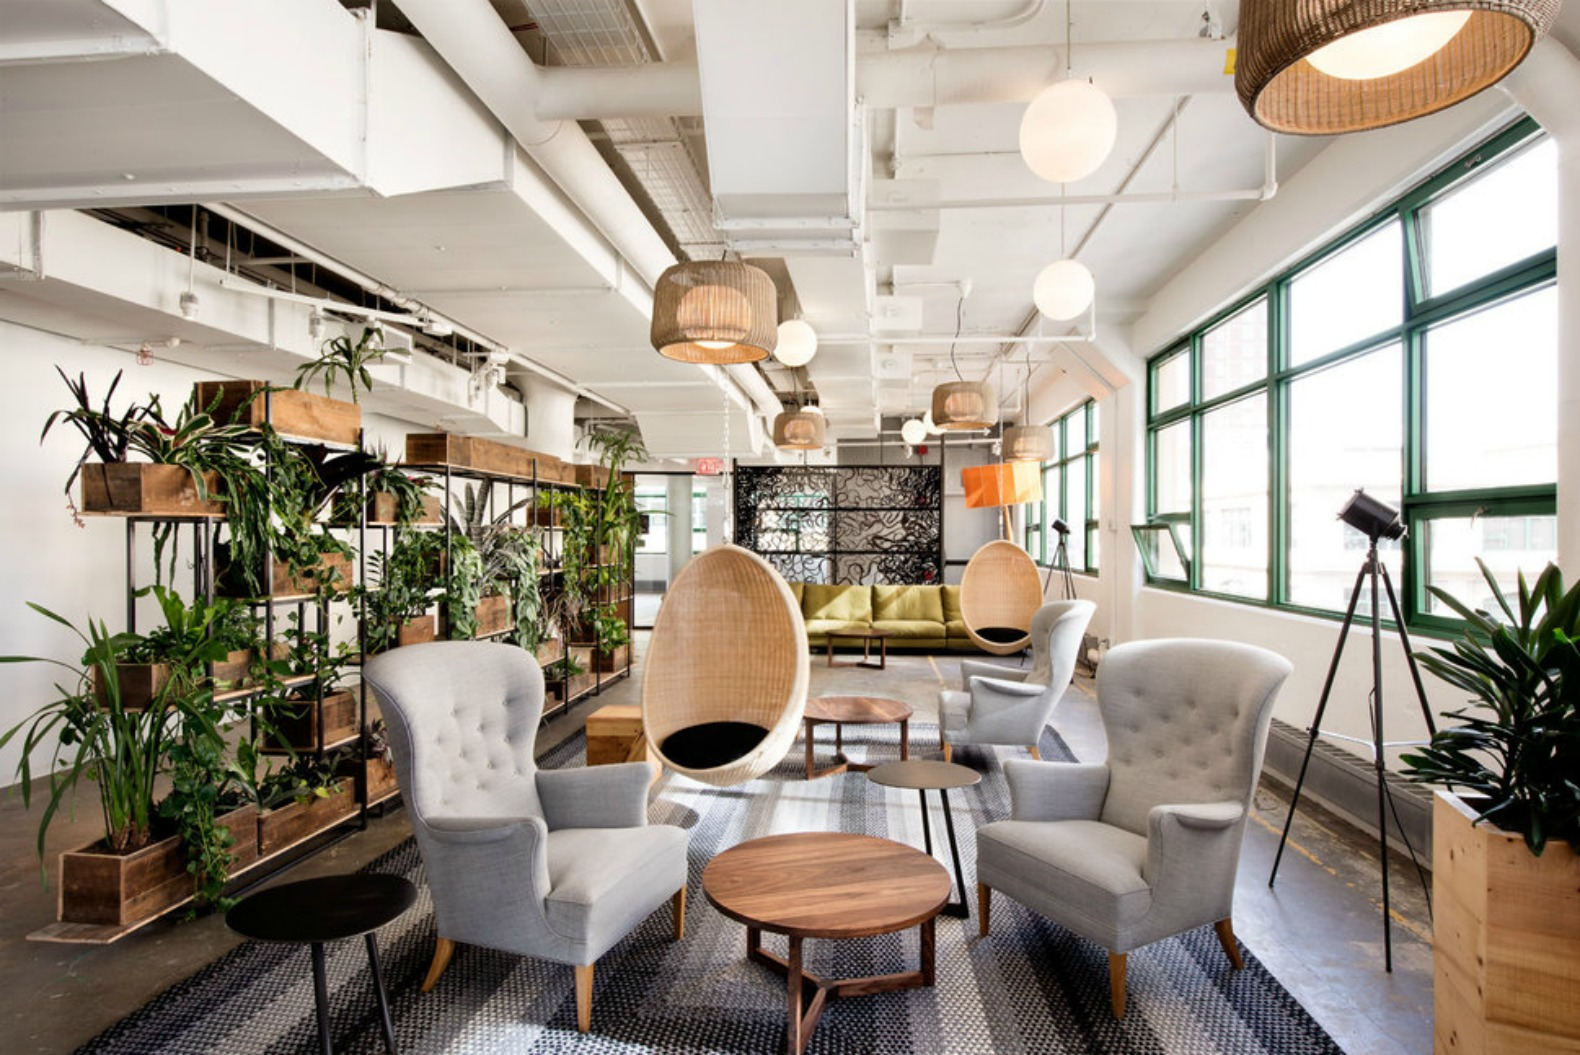 Etsy's New Brooklyn Headquarters Is One Of The Greenest